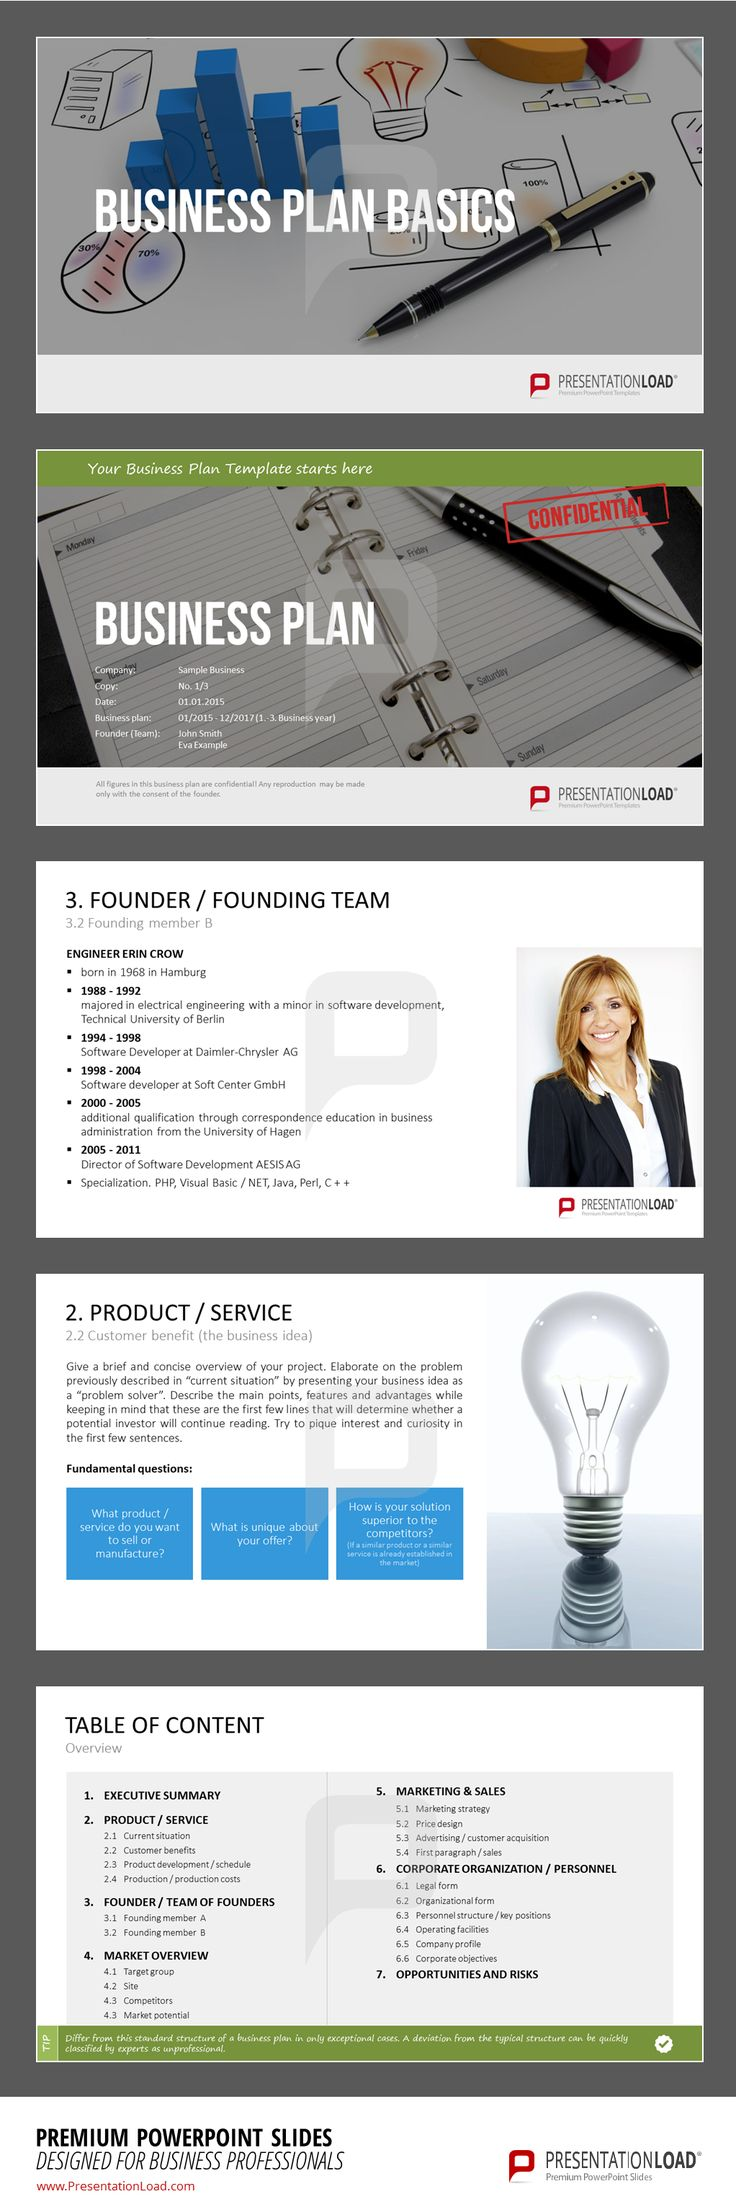 Catering Service - Choose the right one - PowerPoint PPT Presentation